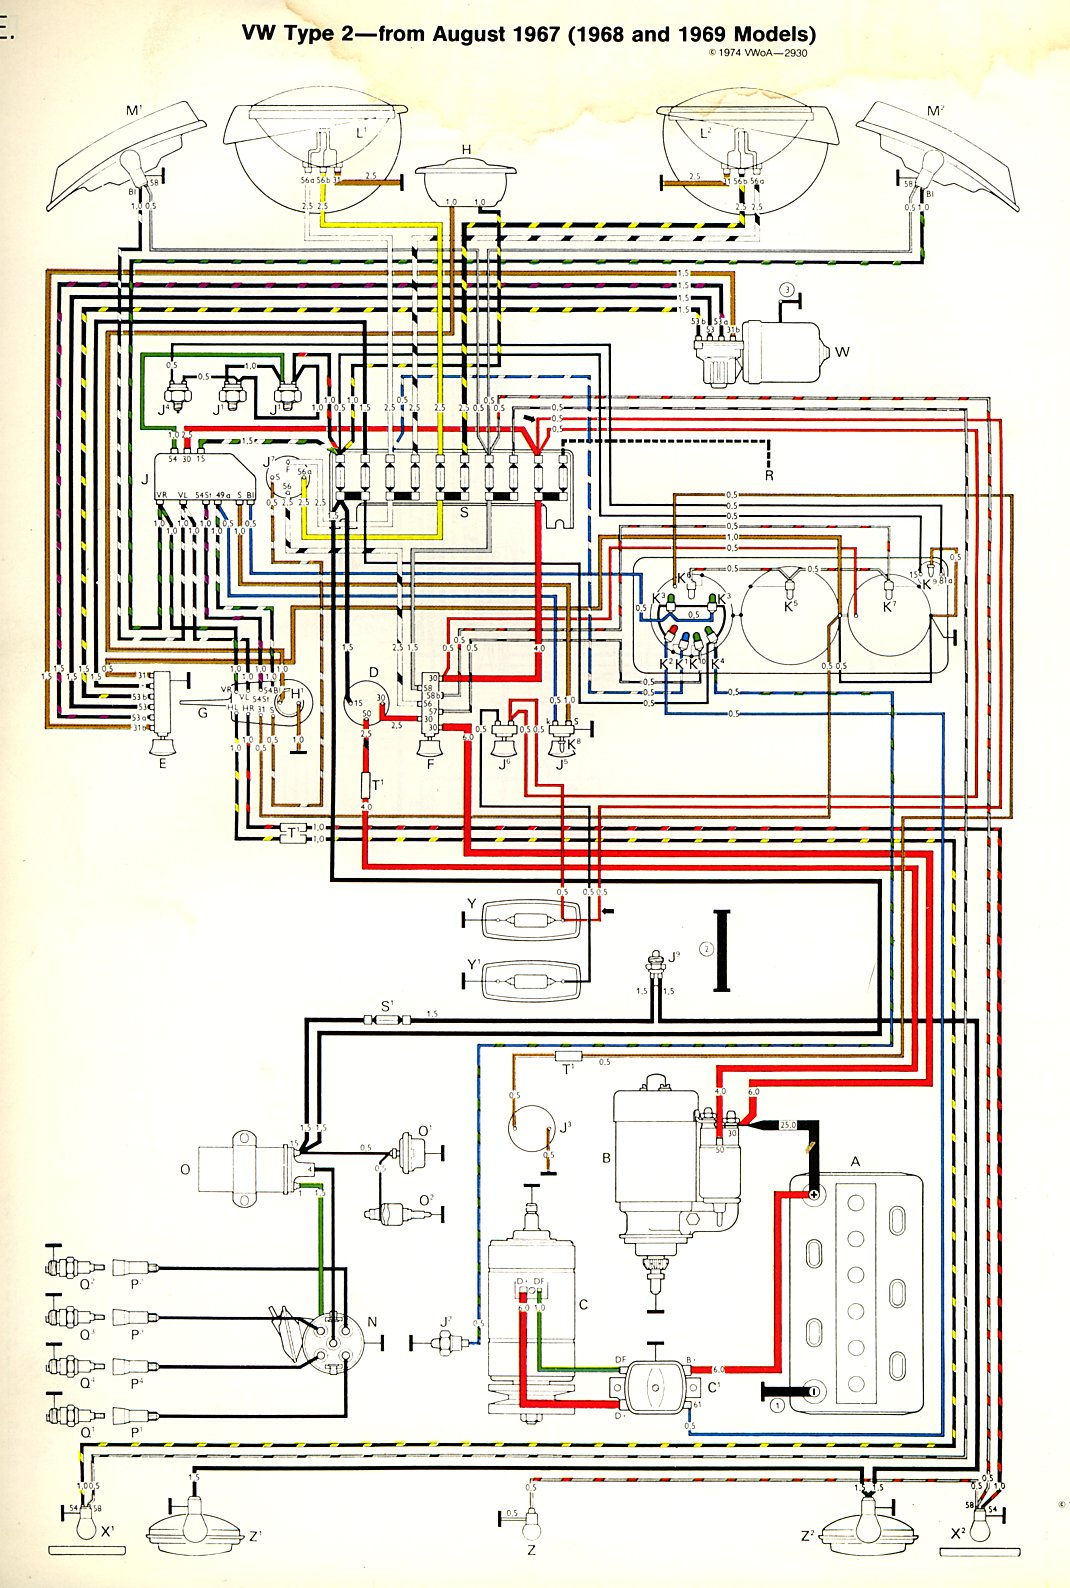 vw 73 bus alternator wiring diagram 73 chevy alternator wiring #7